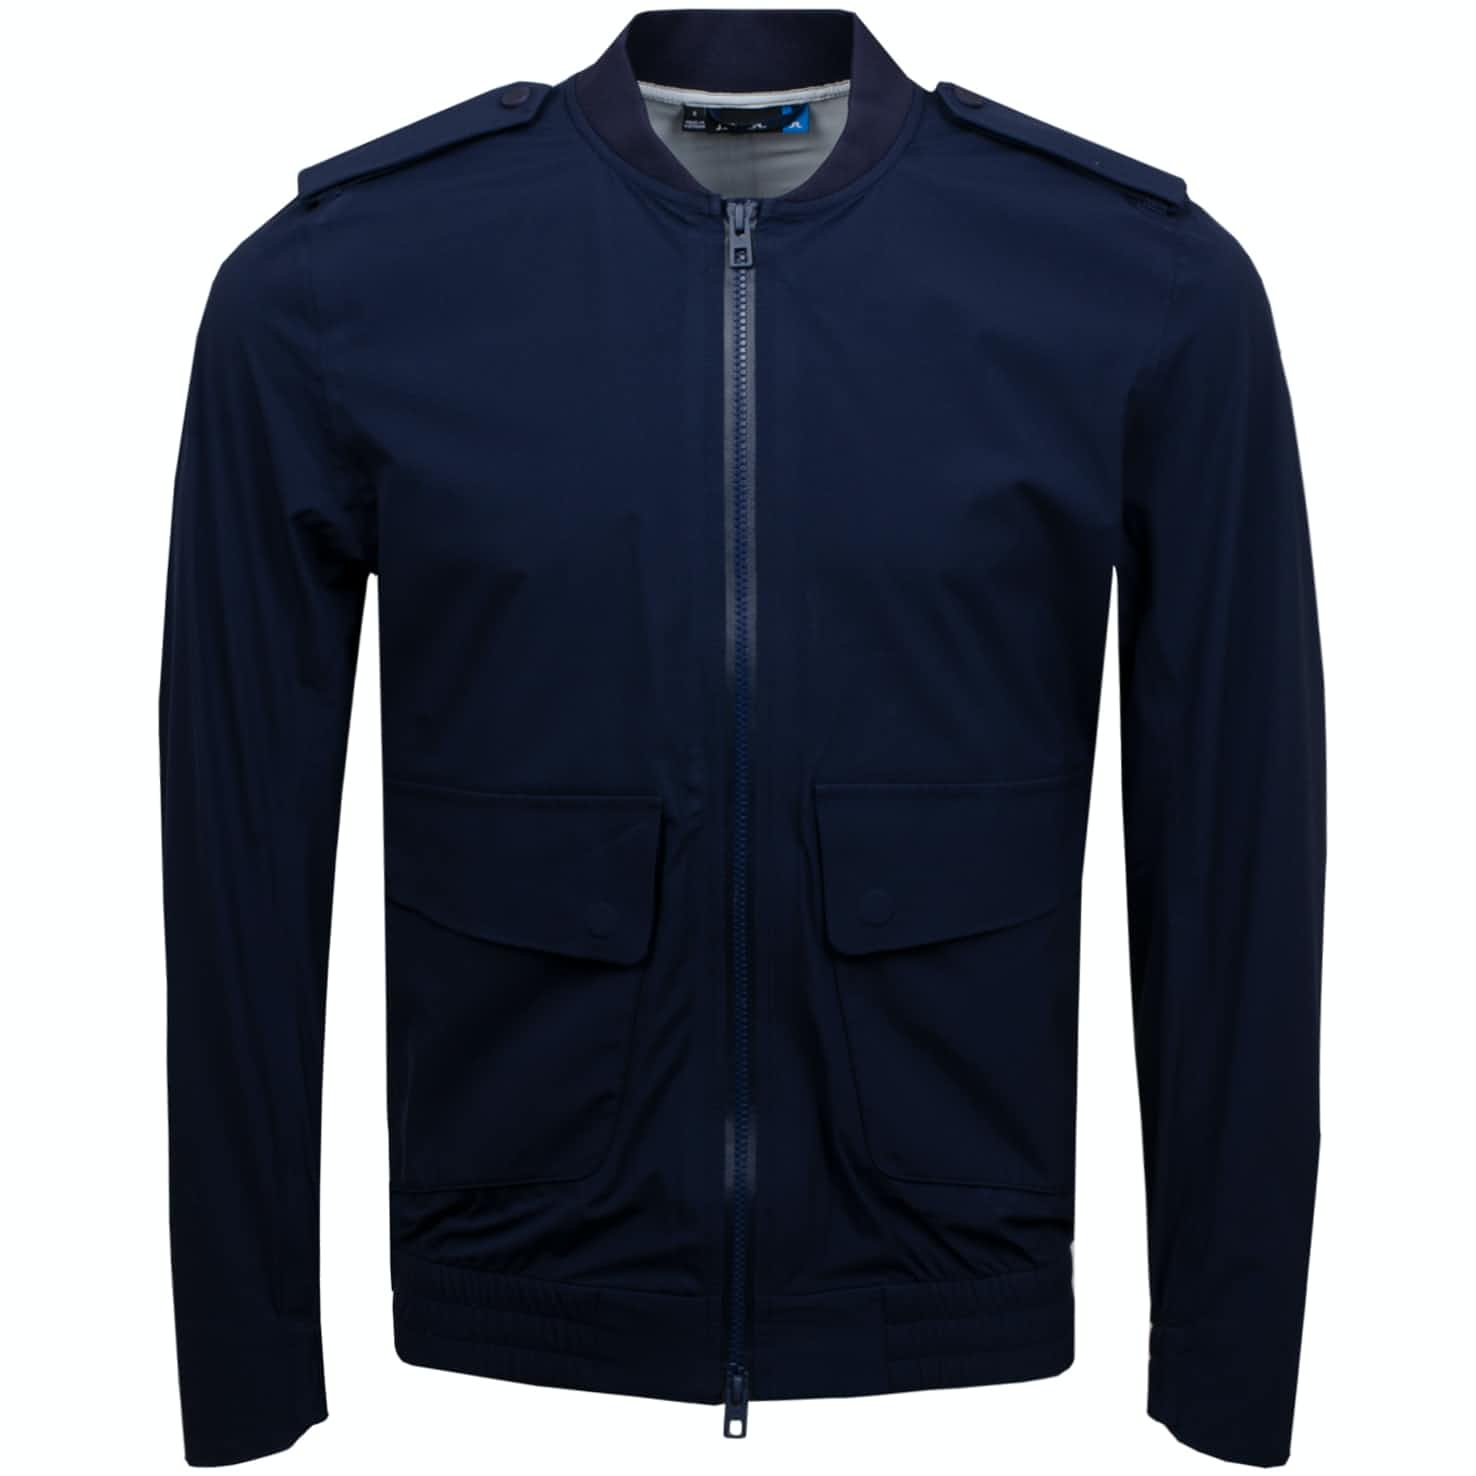 Tech Bomber 2.5 Ply JL Navy - AW18